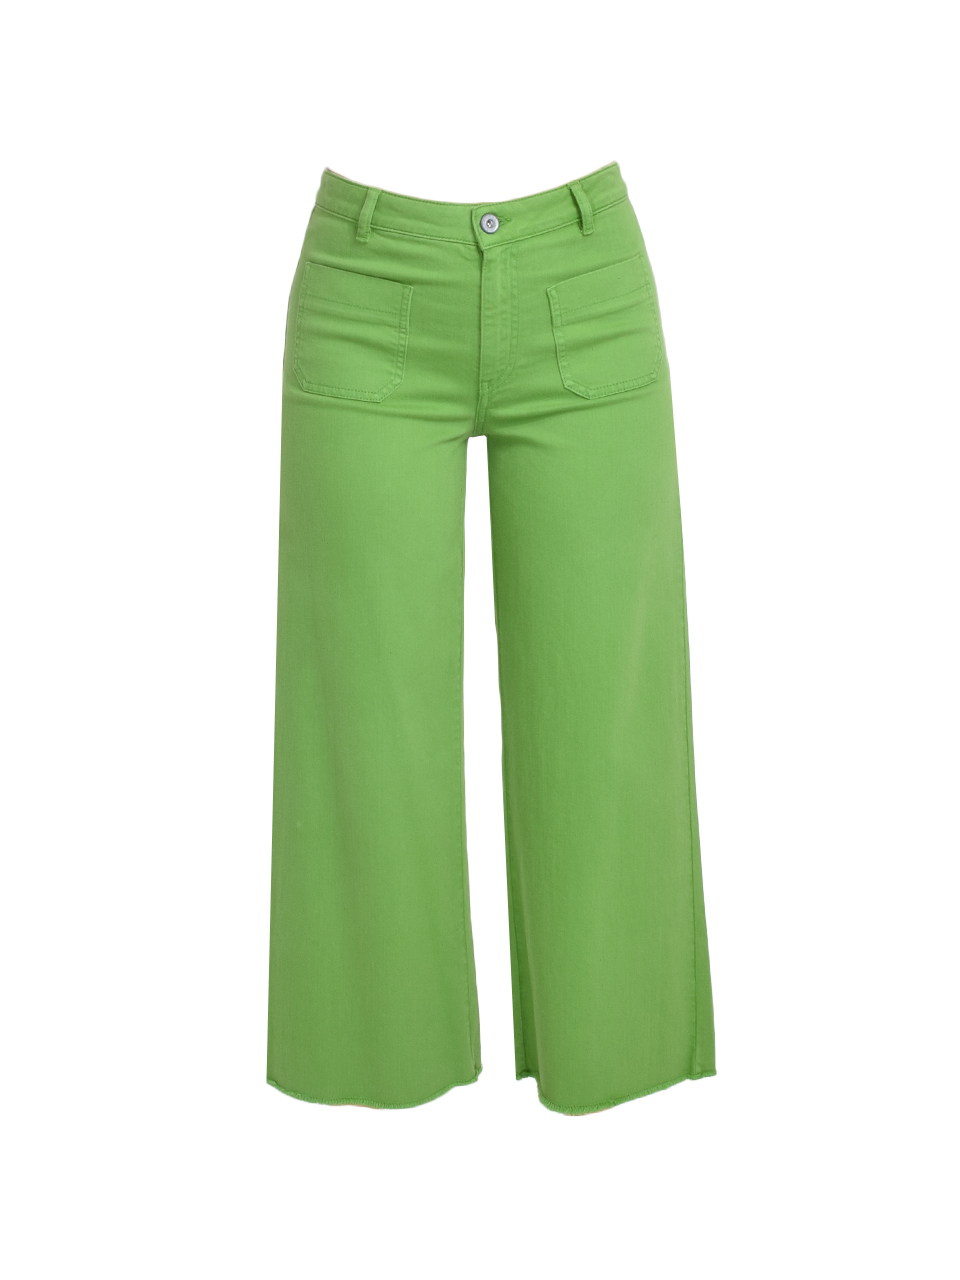 Ottod'Ame Cropped Flare Jeans in Green Product Shot